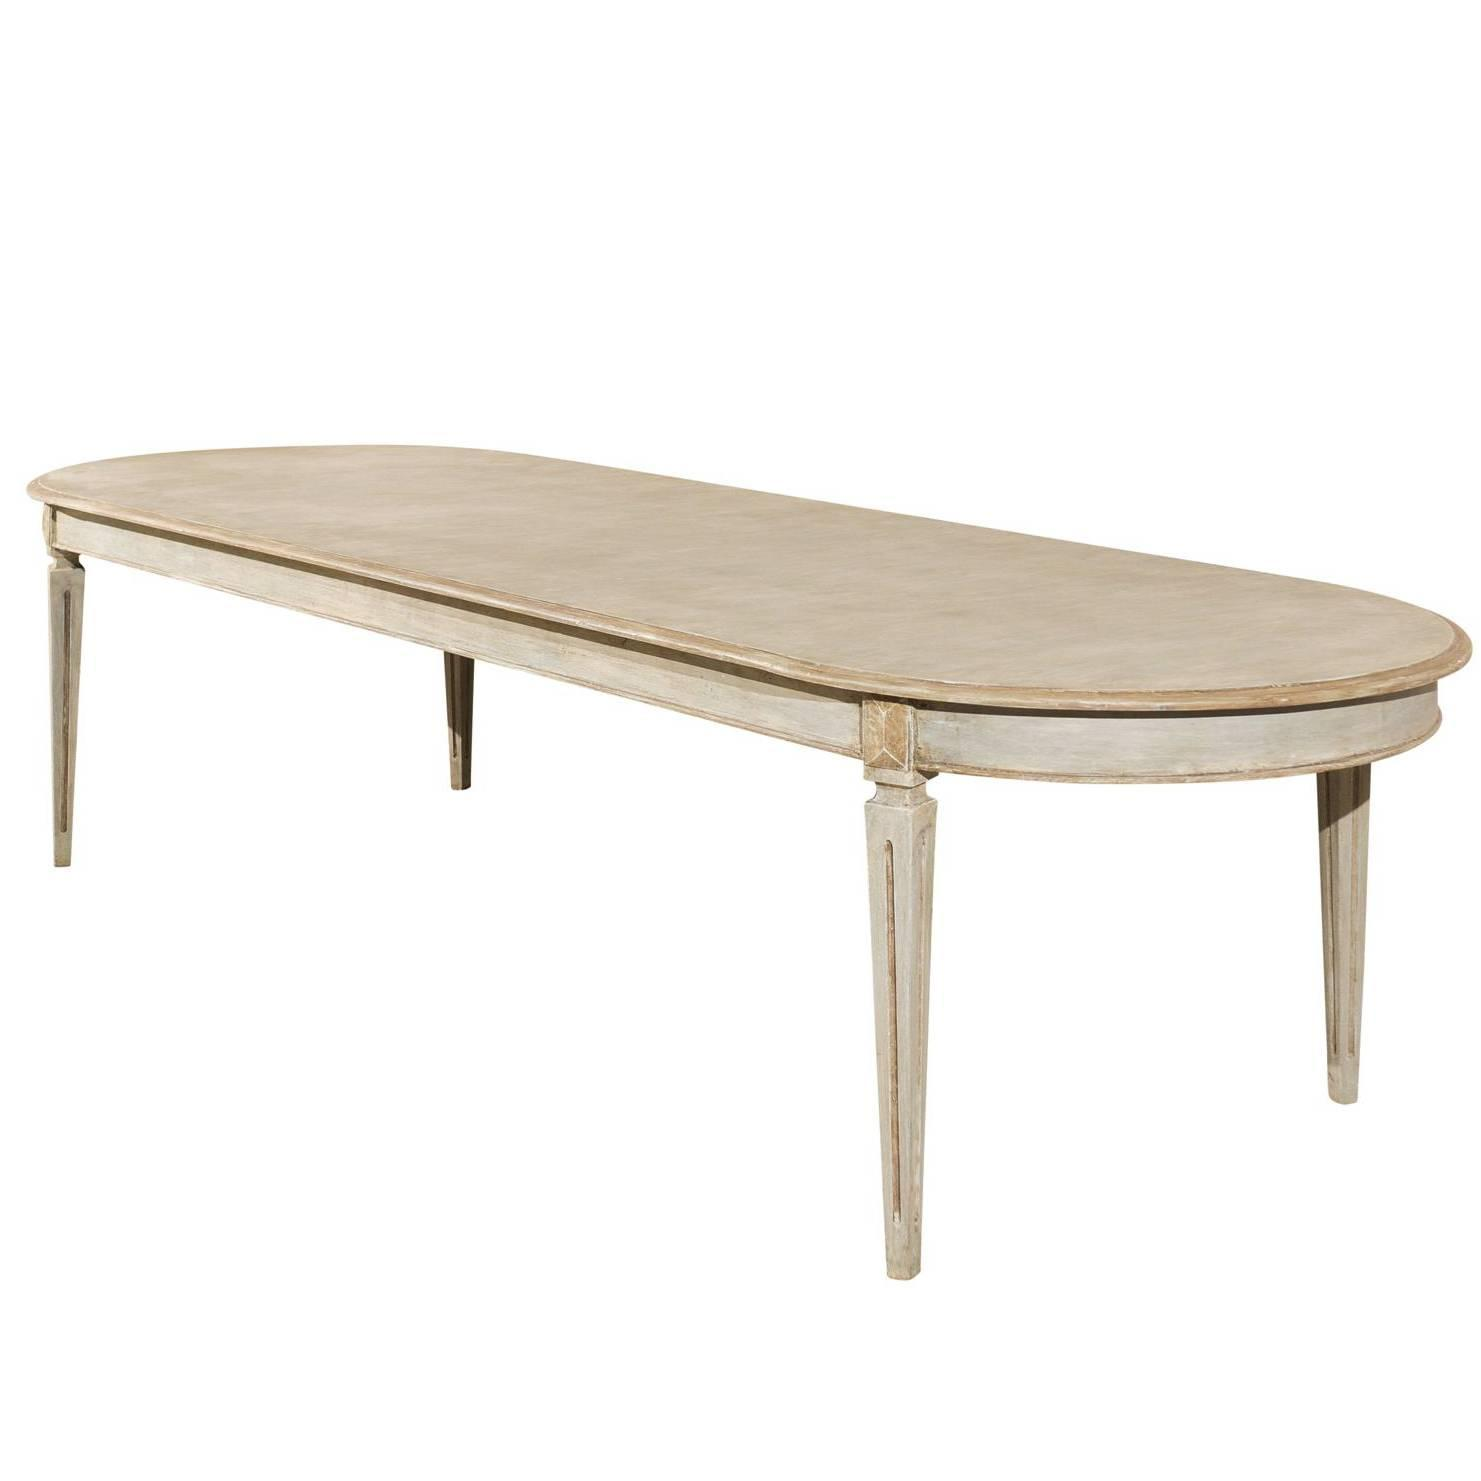 Swedish Oval Shaped Gustavian Style Dining Table At 1stdibs